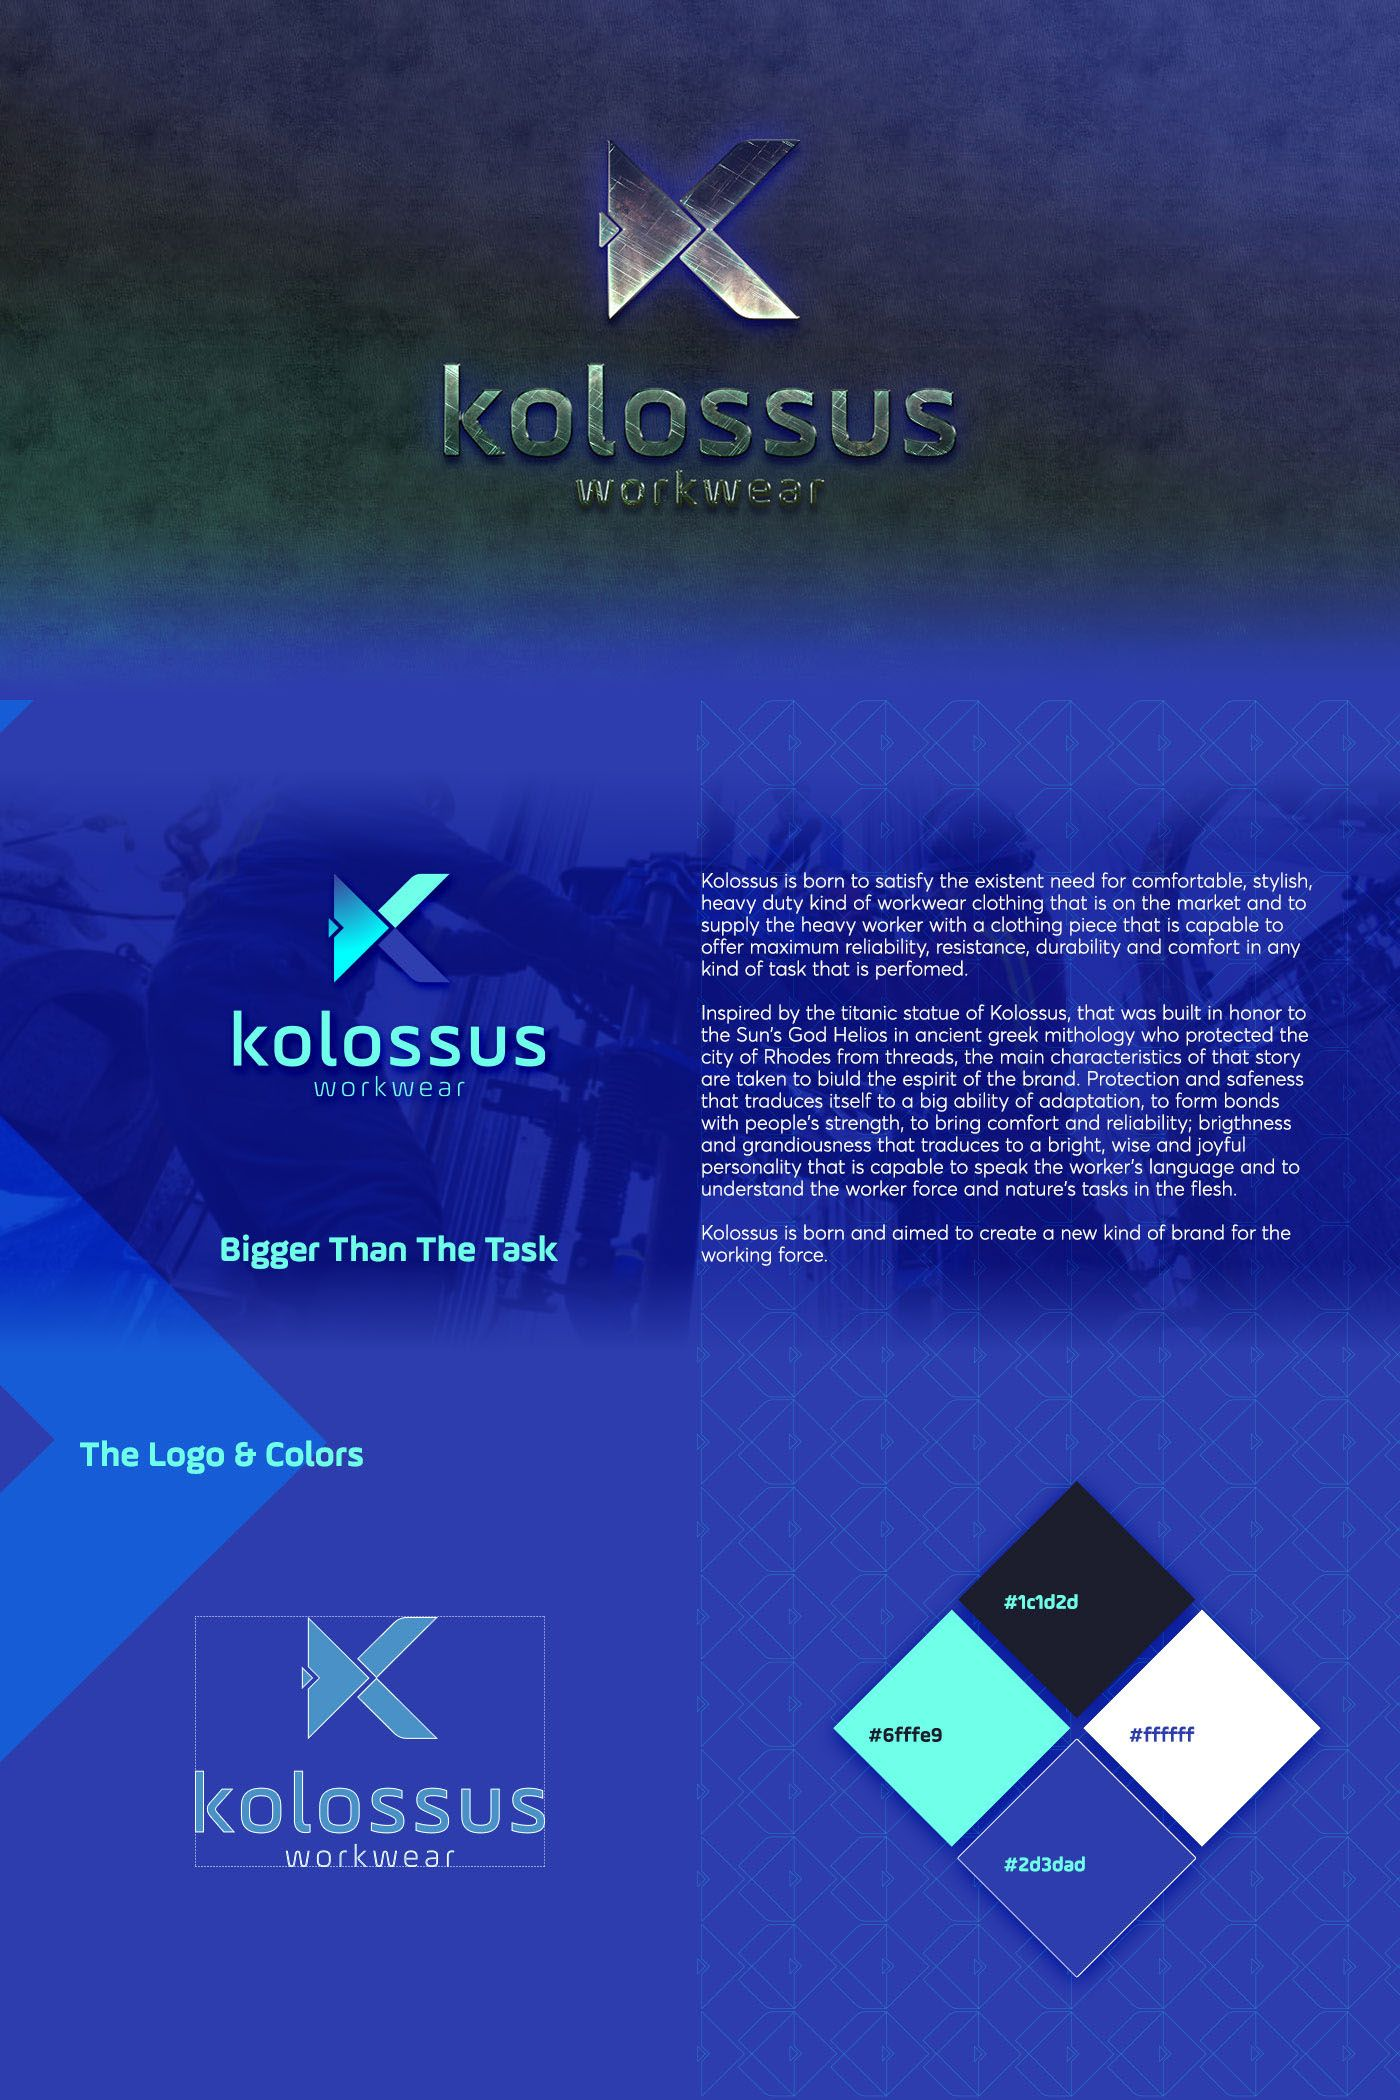 Kolossus Workwear on Behance